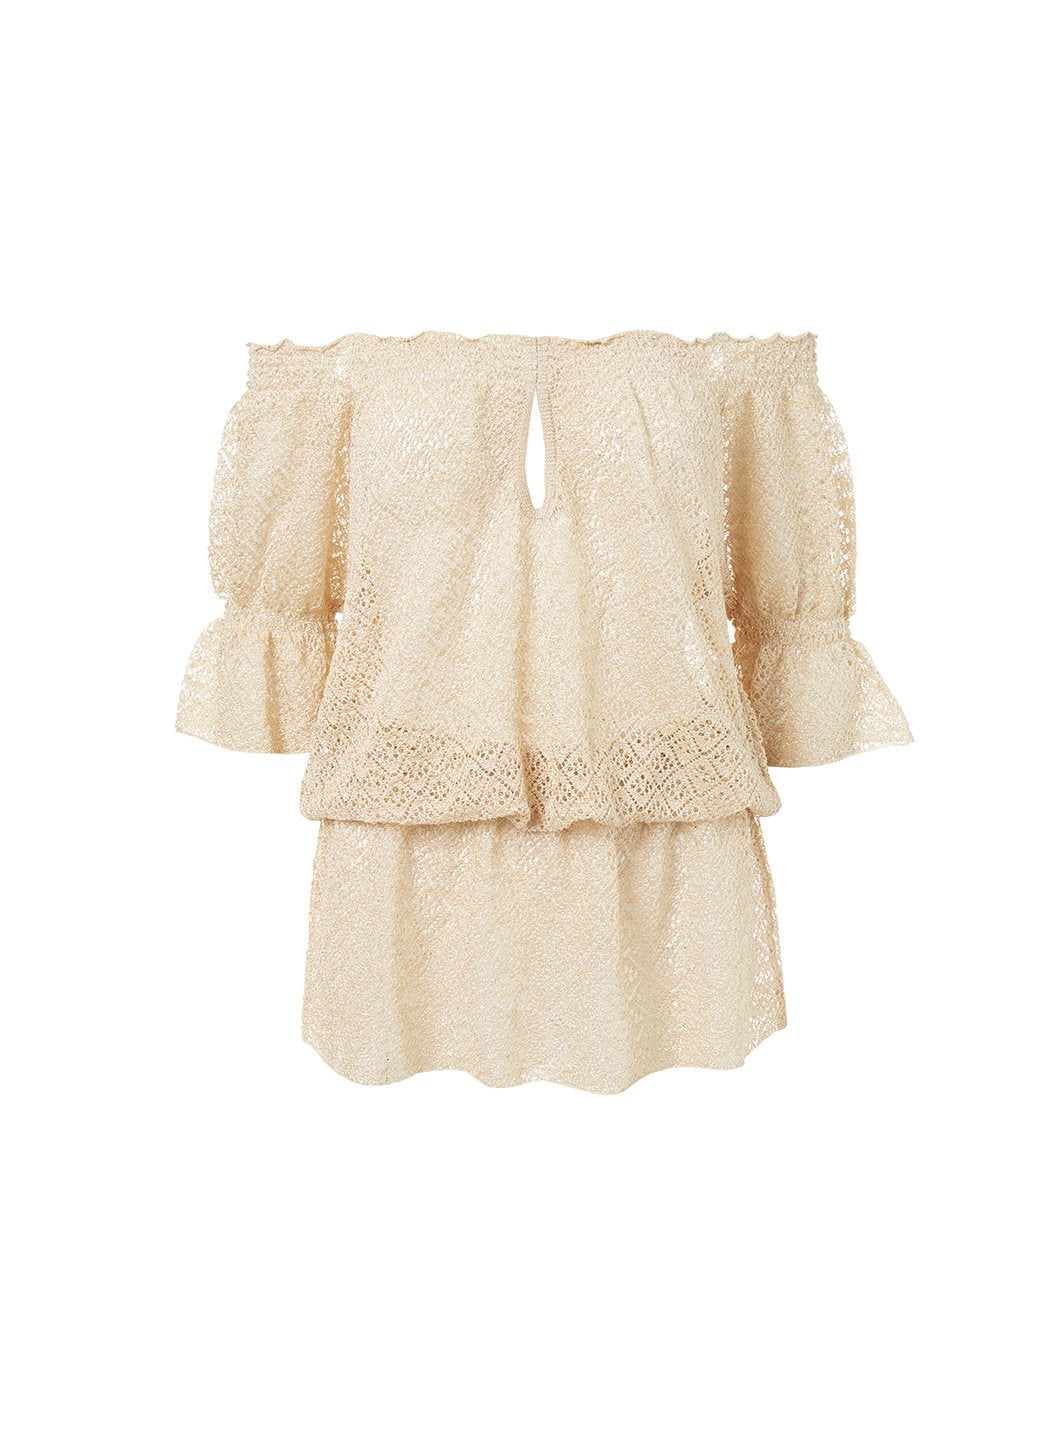 flo gold crochet offtheshoulder short beach dress 2019